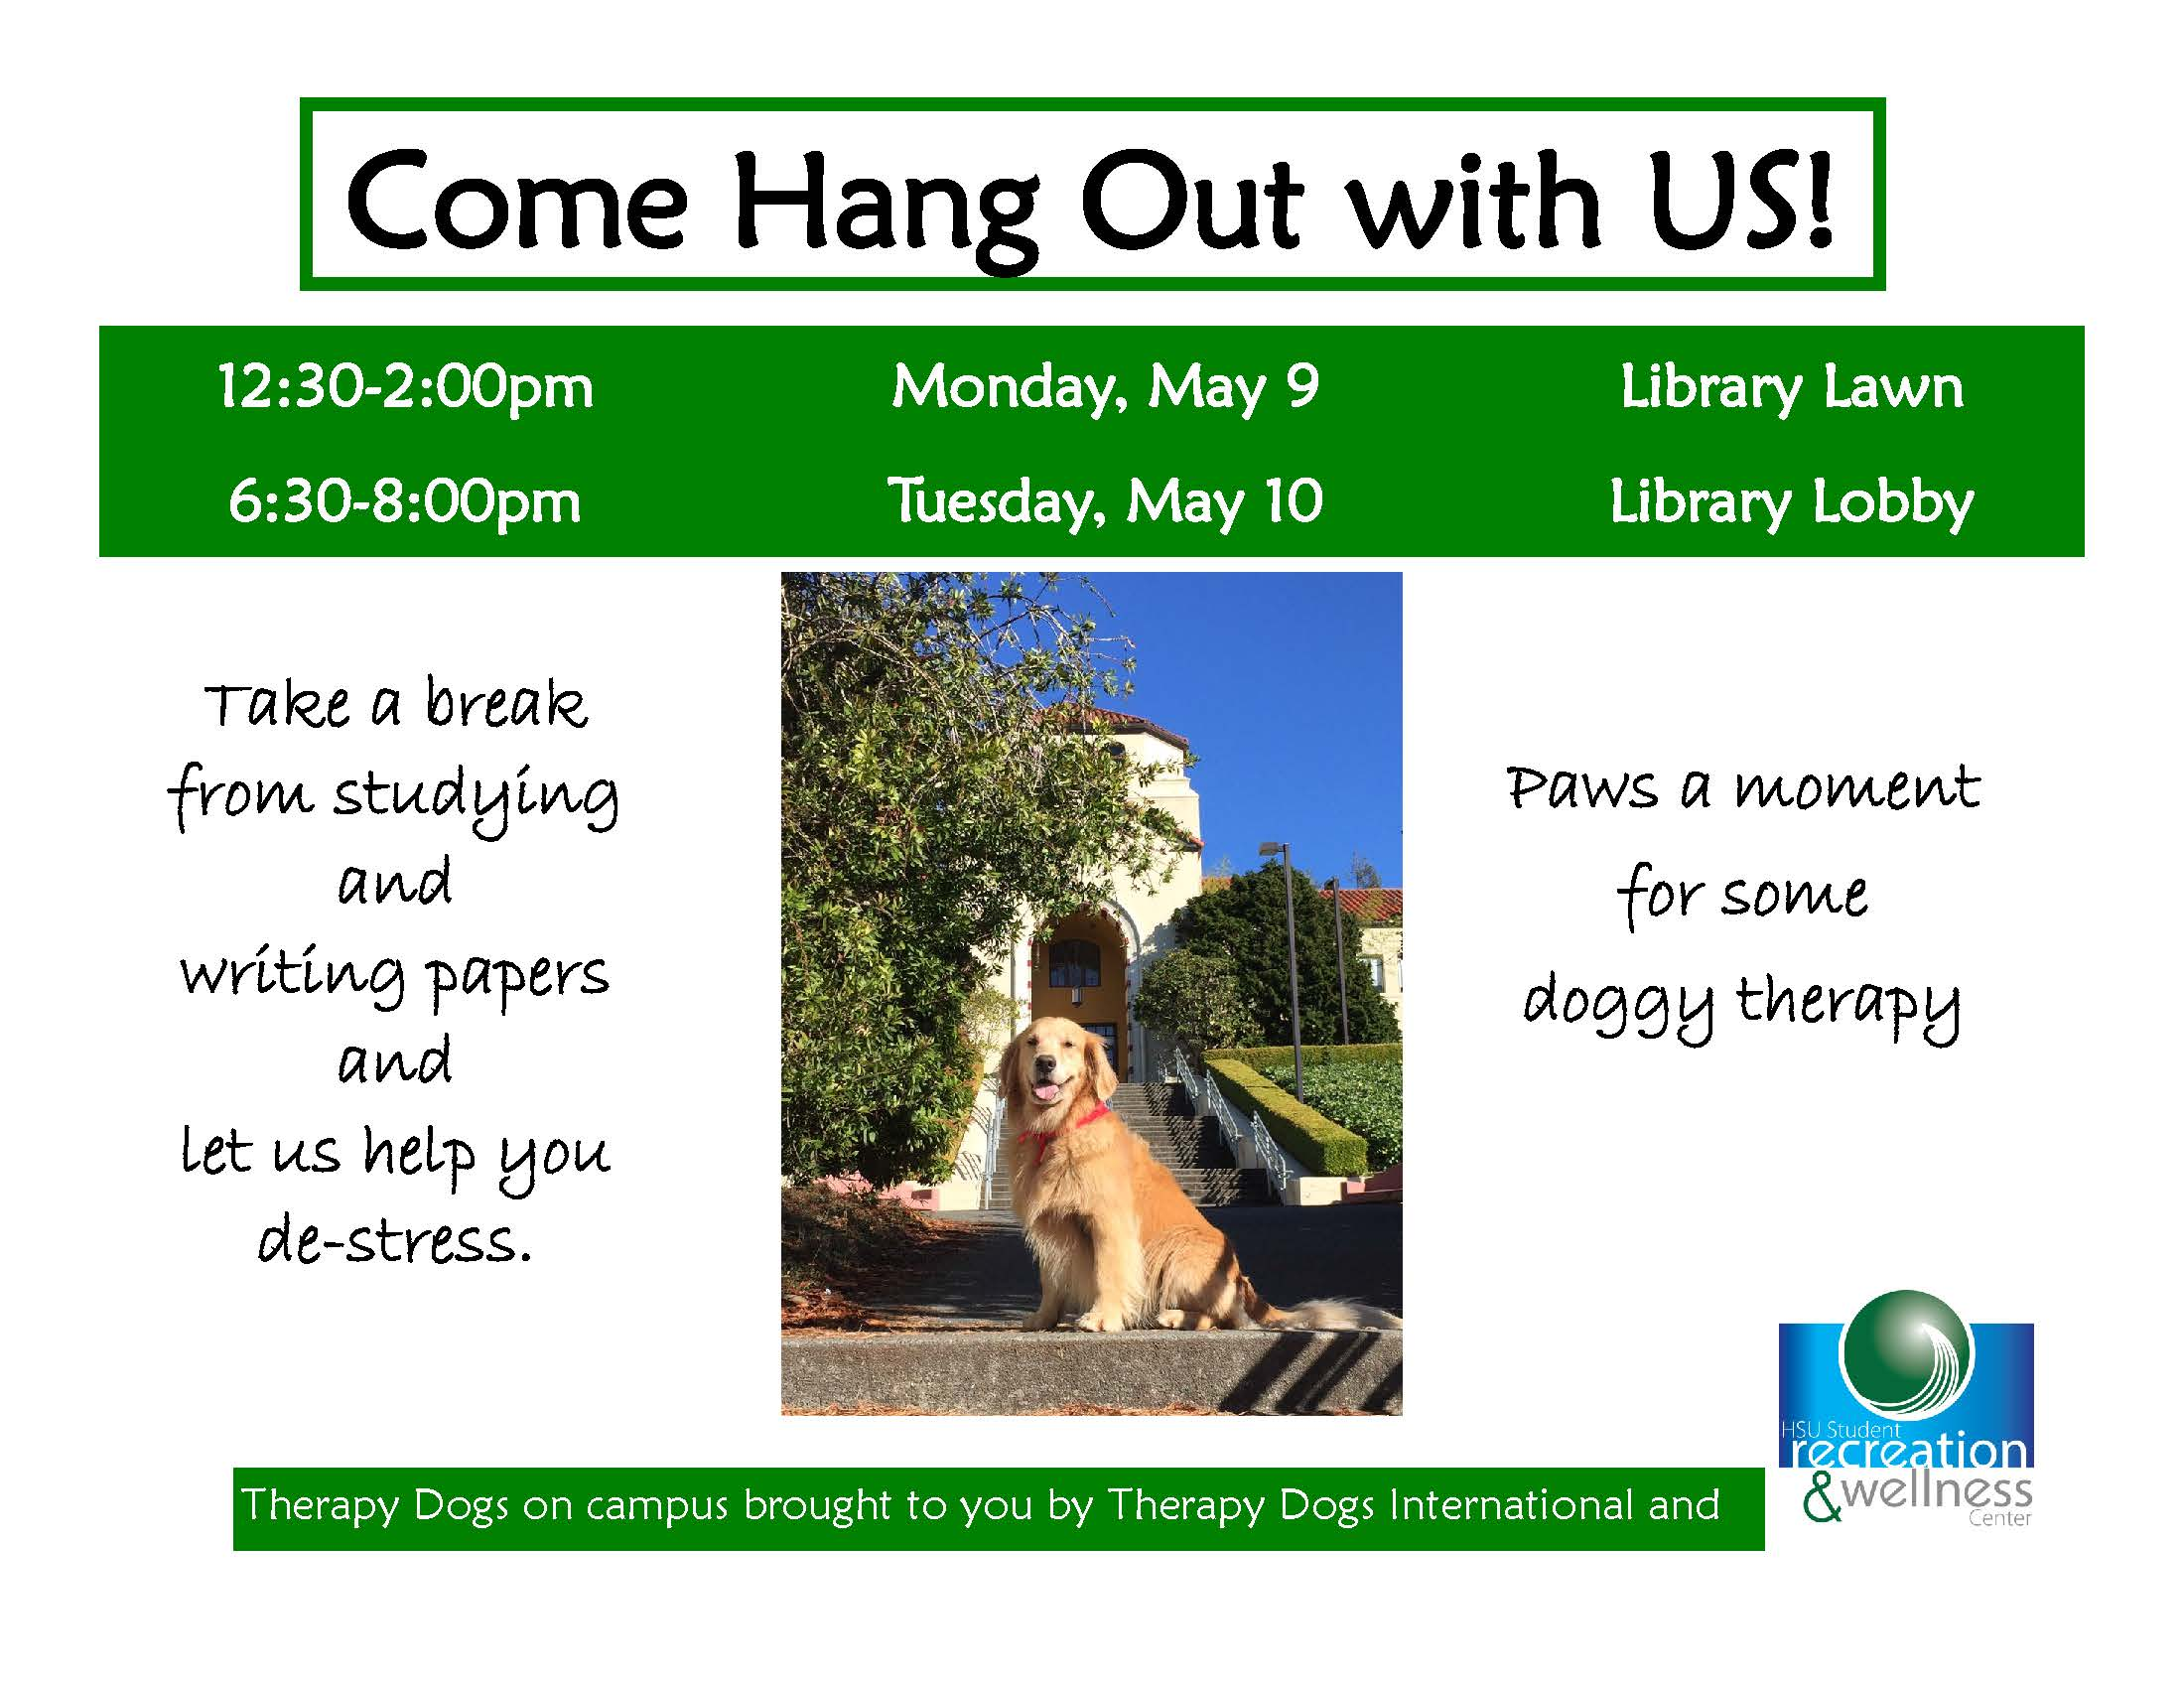 Come Hang Out with Us Therapy dogs in the library